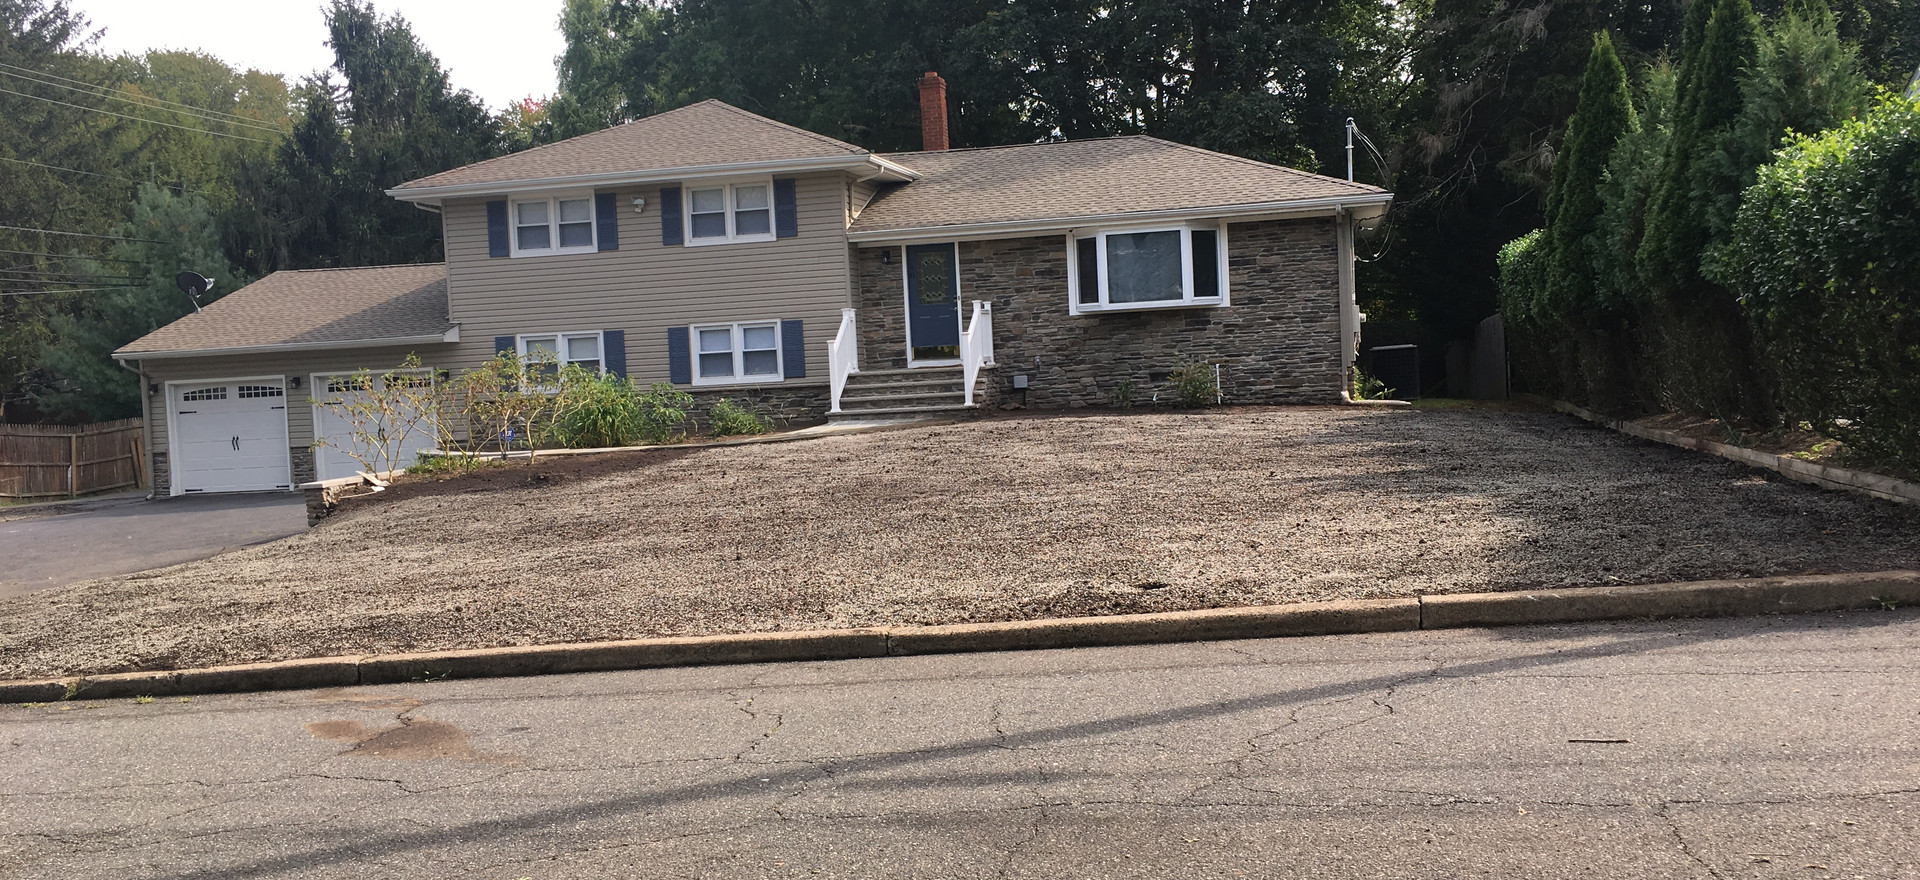 Existing lawn removed and property graded